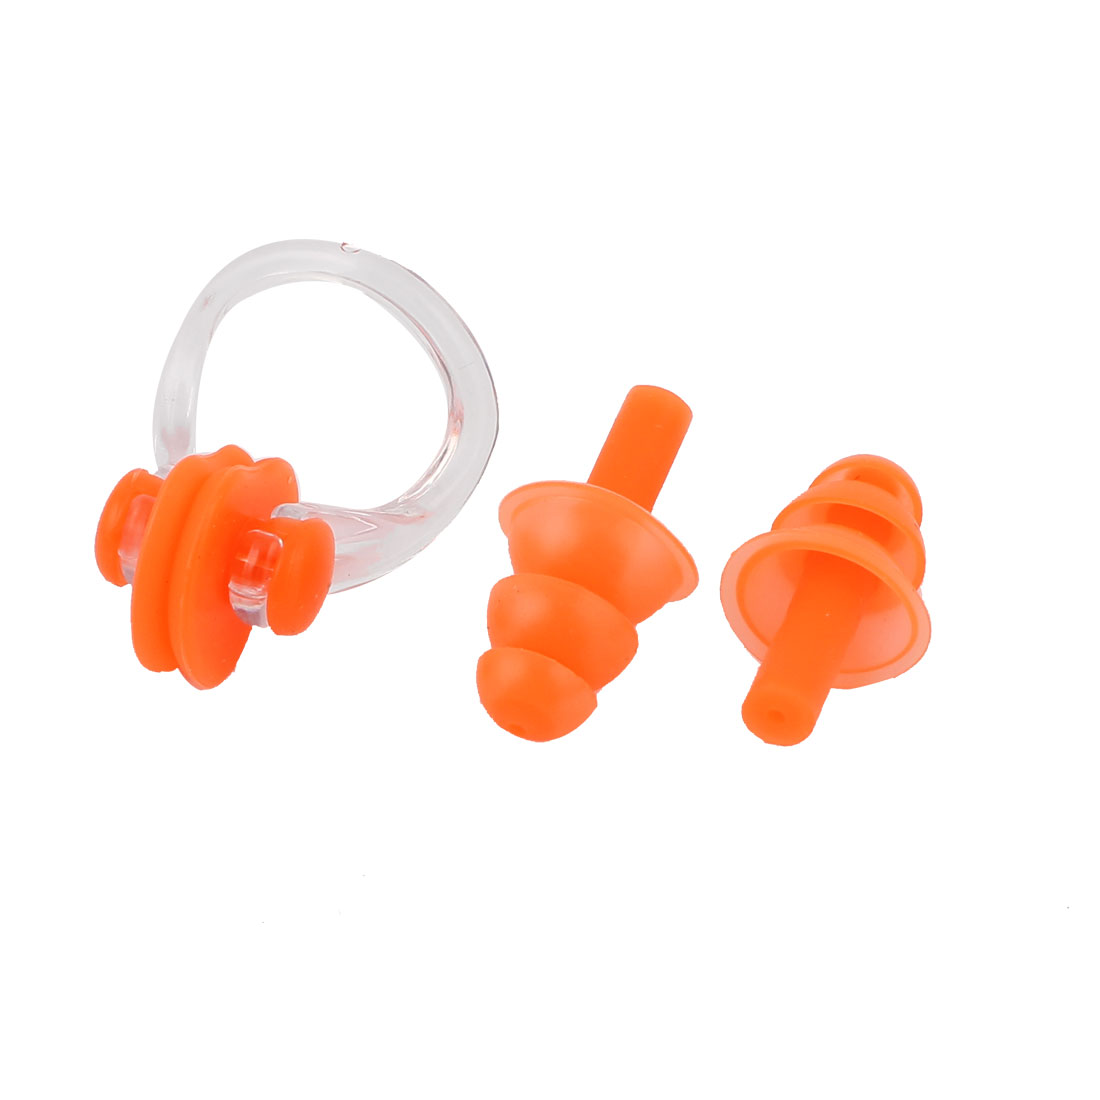 Pair Soft Silicone Hearing Protection Swim Nose Clip Noseclip Orange